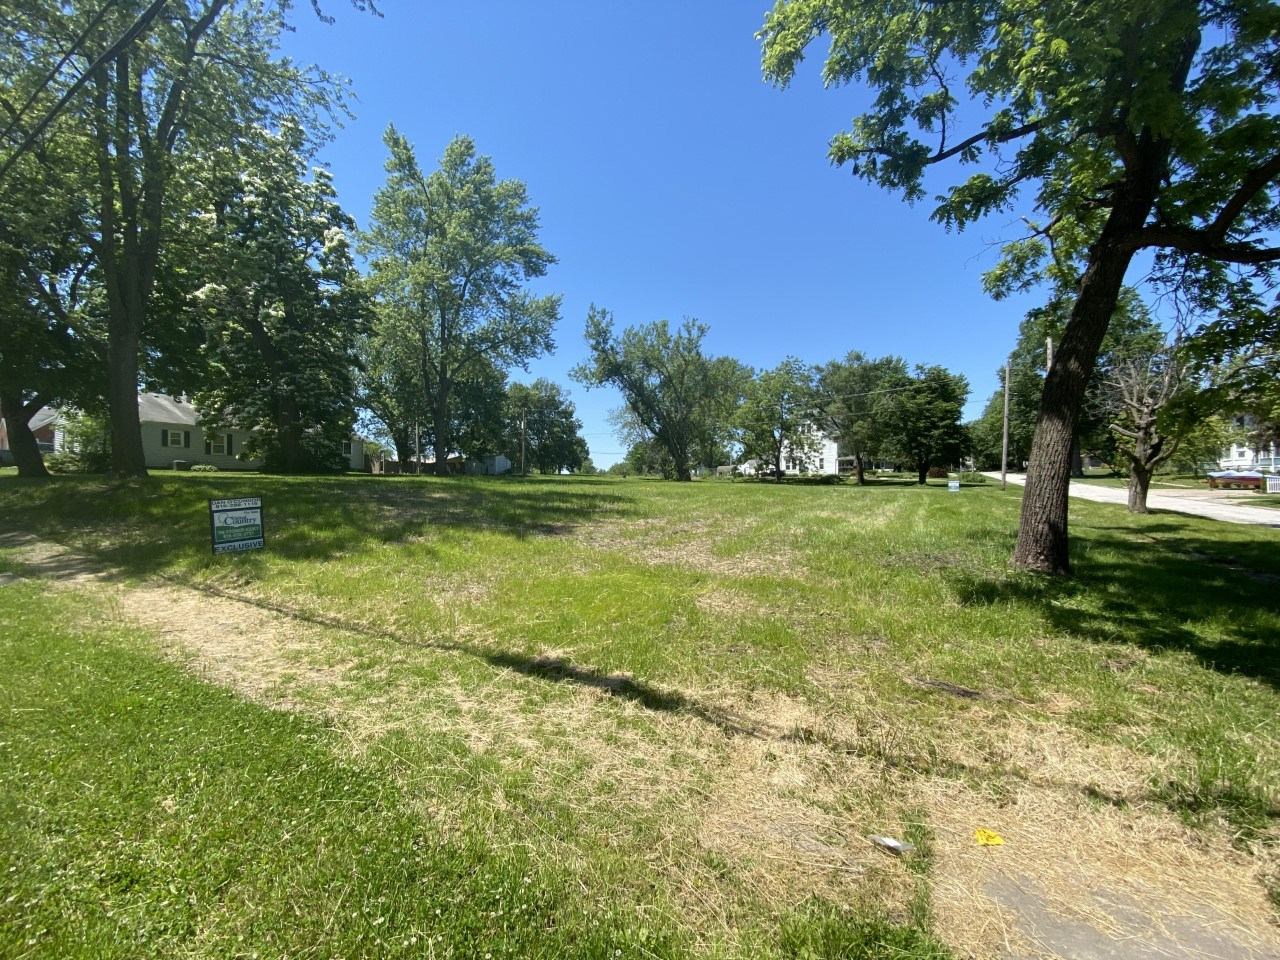 FOR SALE 1/2 ACRE LOT INSIDE CITY LIMITS OF CAMERON, MO